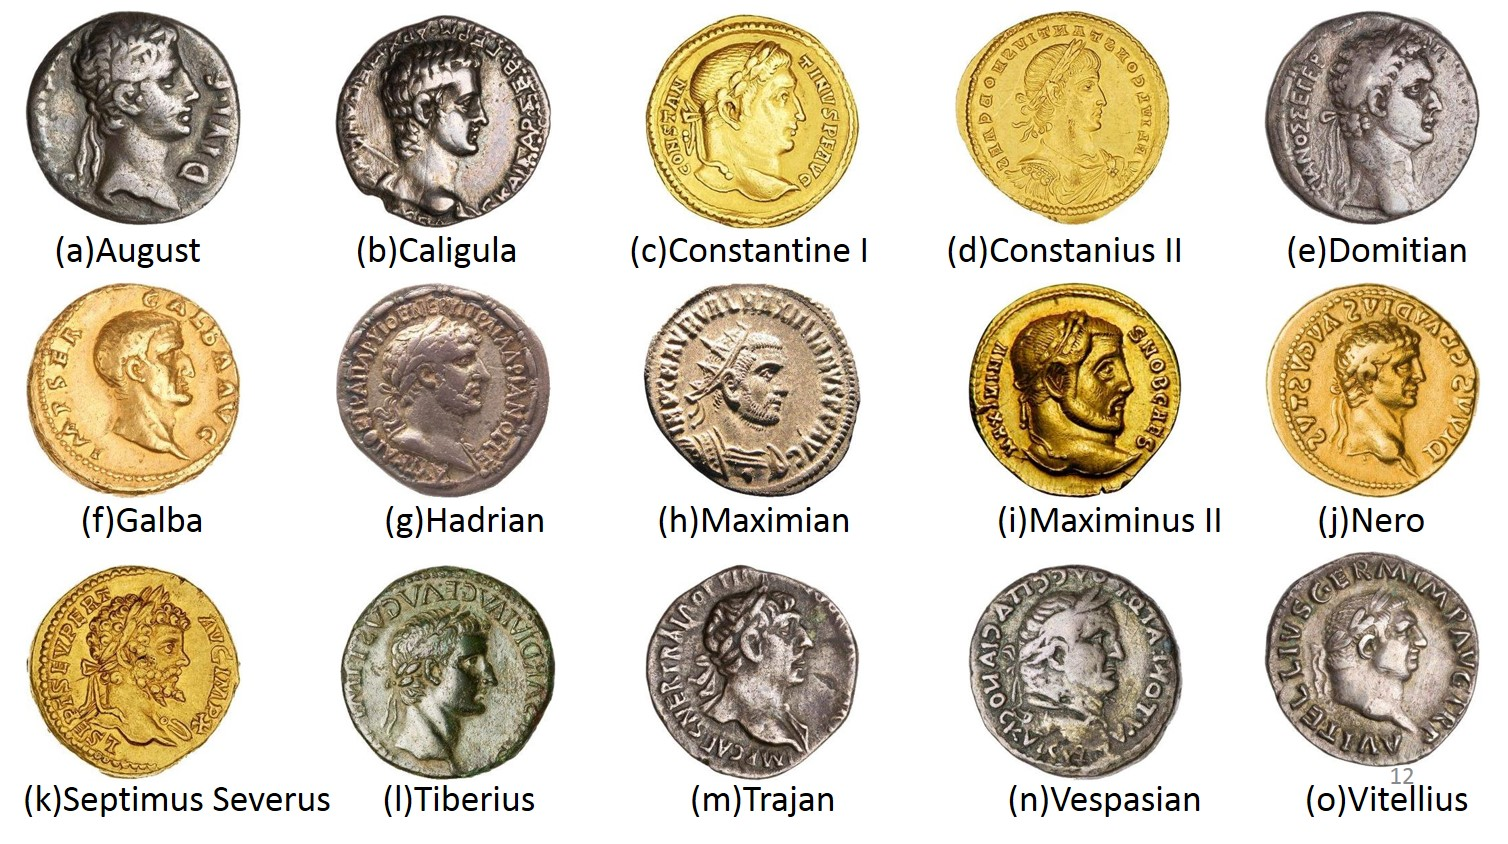 Recognition Of Ancient Roman Coins Using Spatial